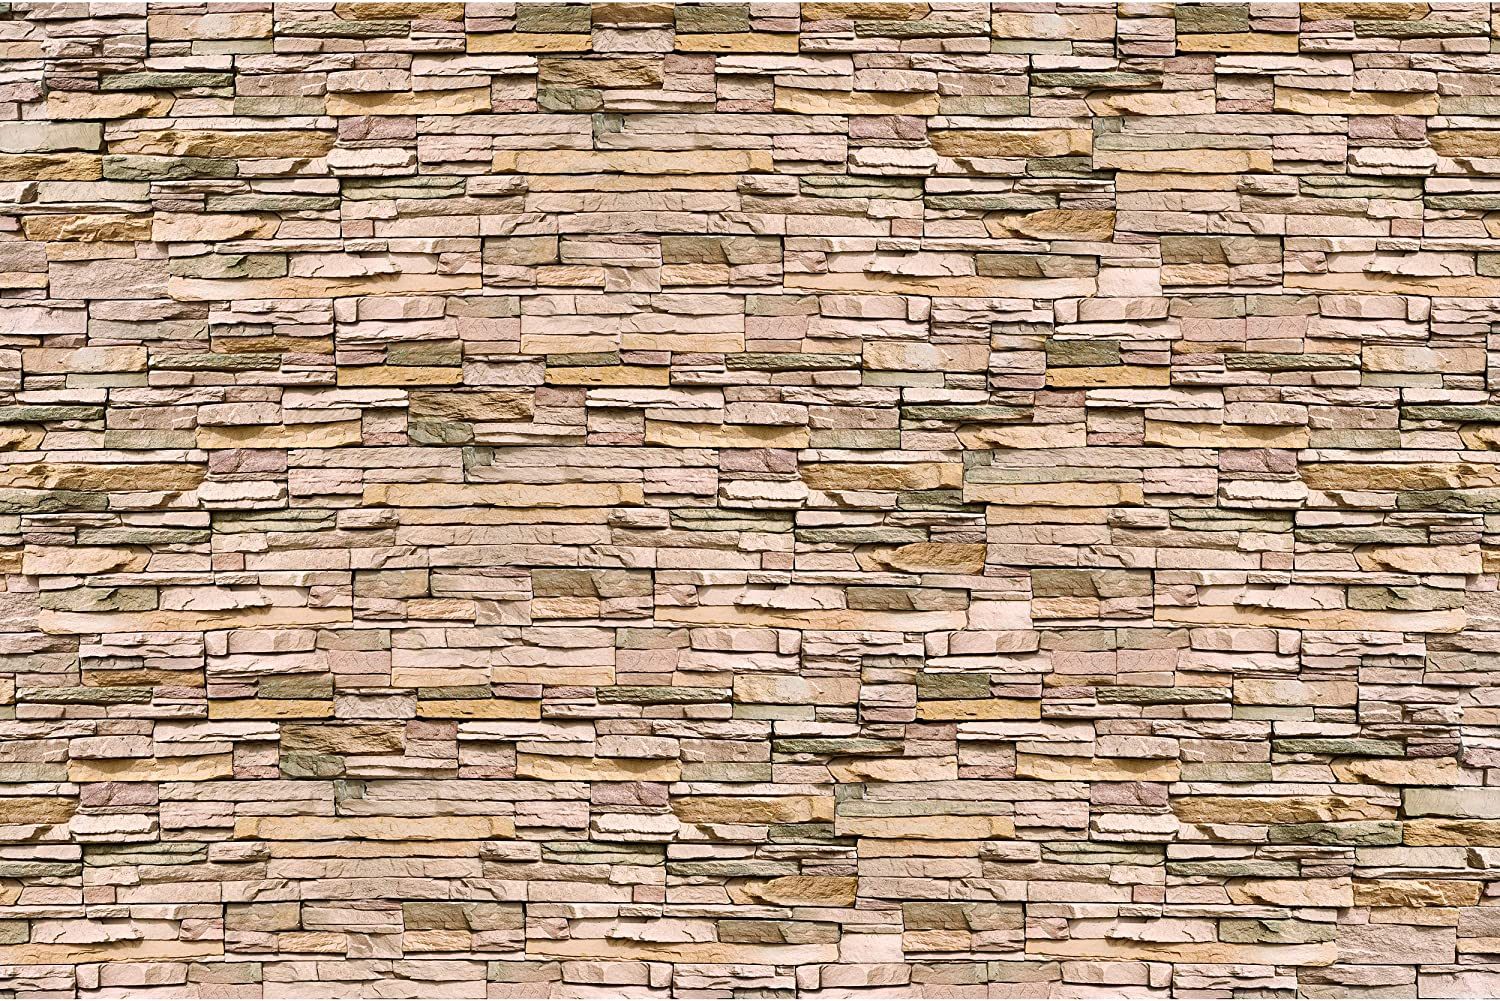 Large Photo Wallpaper – Noble Beige Stonewall – Picture Decoration Modern Natural Slate Stone Look Wall Cladding Masonry Sandstone Image Decor Wall Mural (132.3x93.7in - 336x238cm)